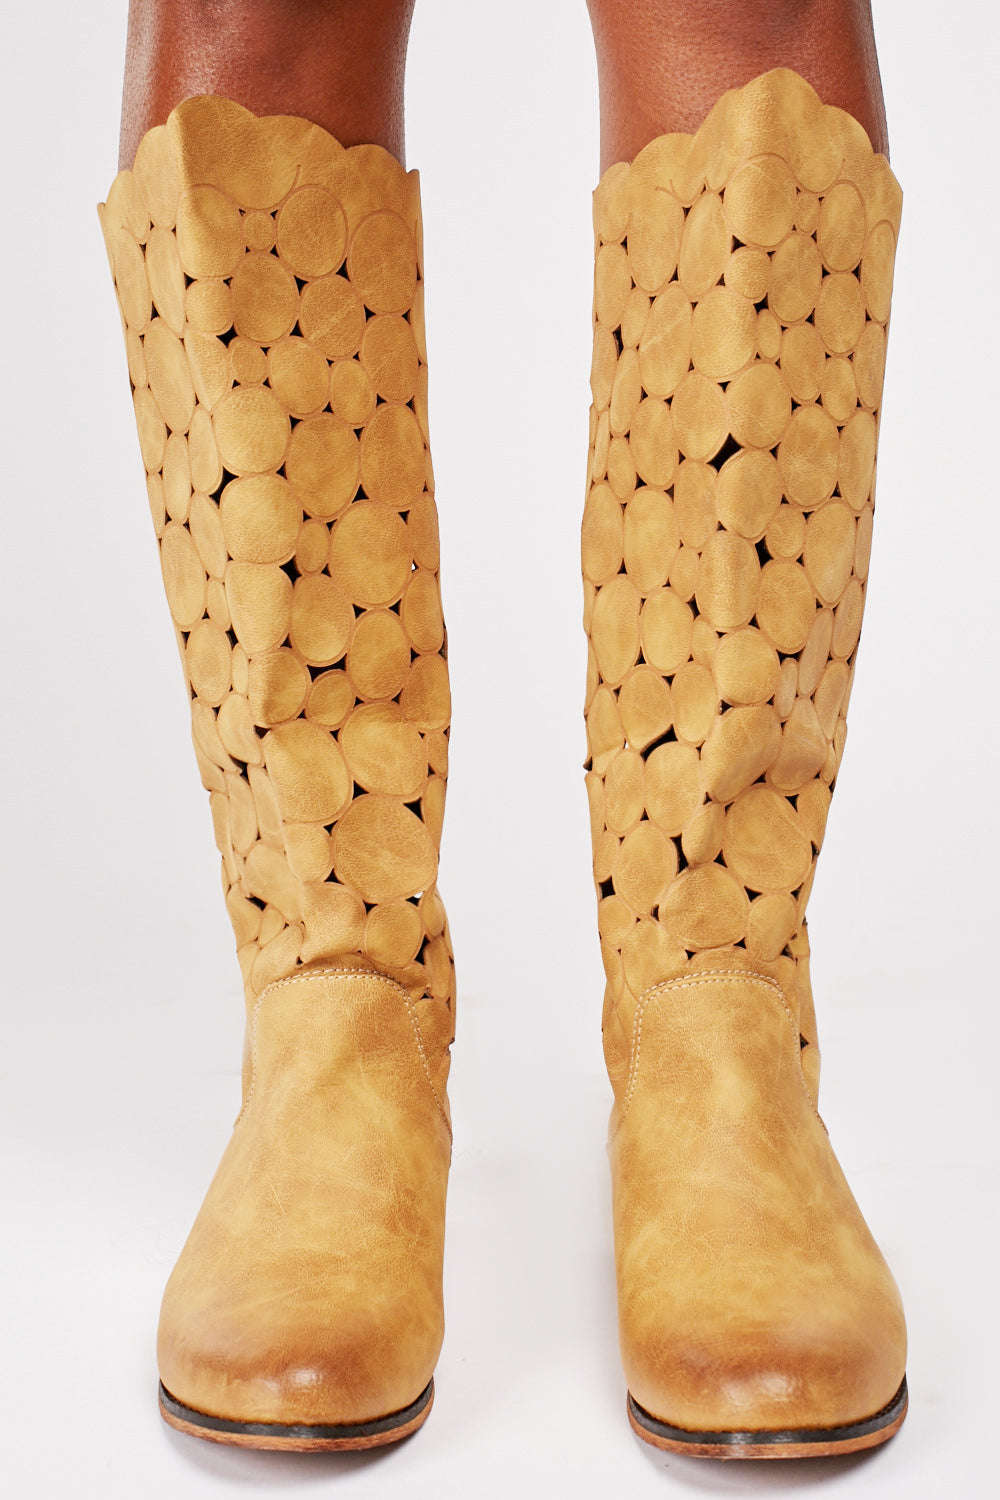 Gabby Laser Cut Out High Leg Boots